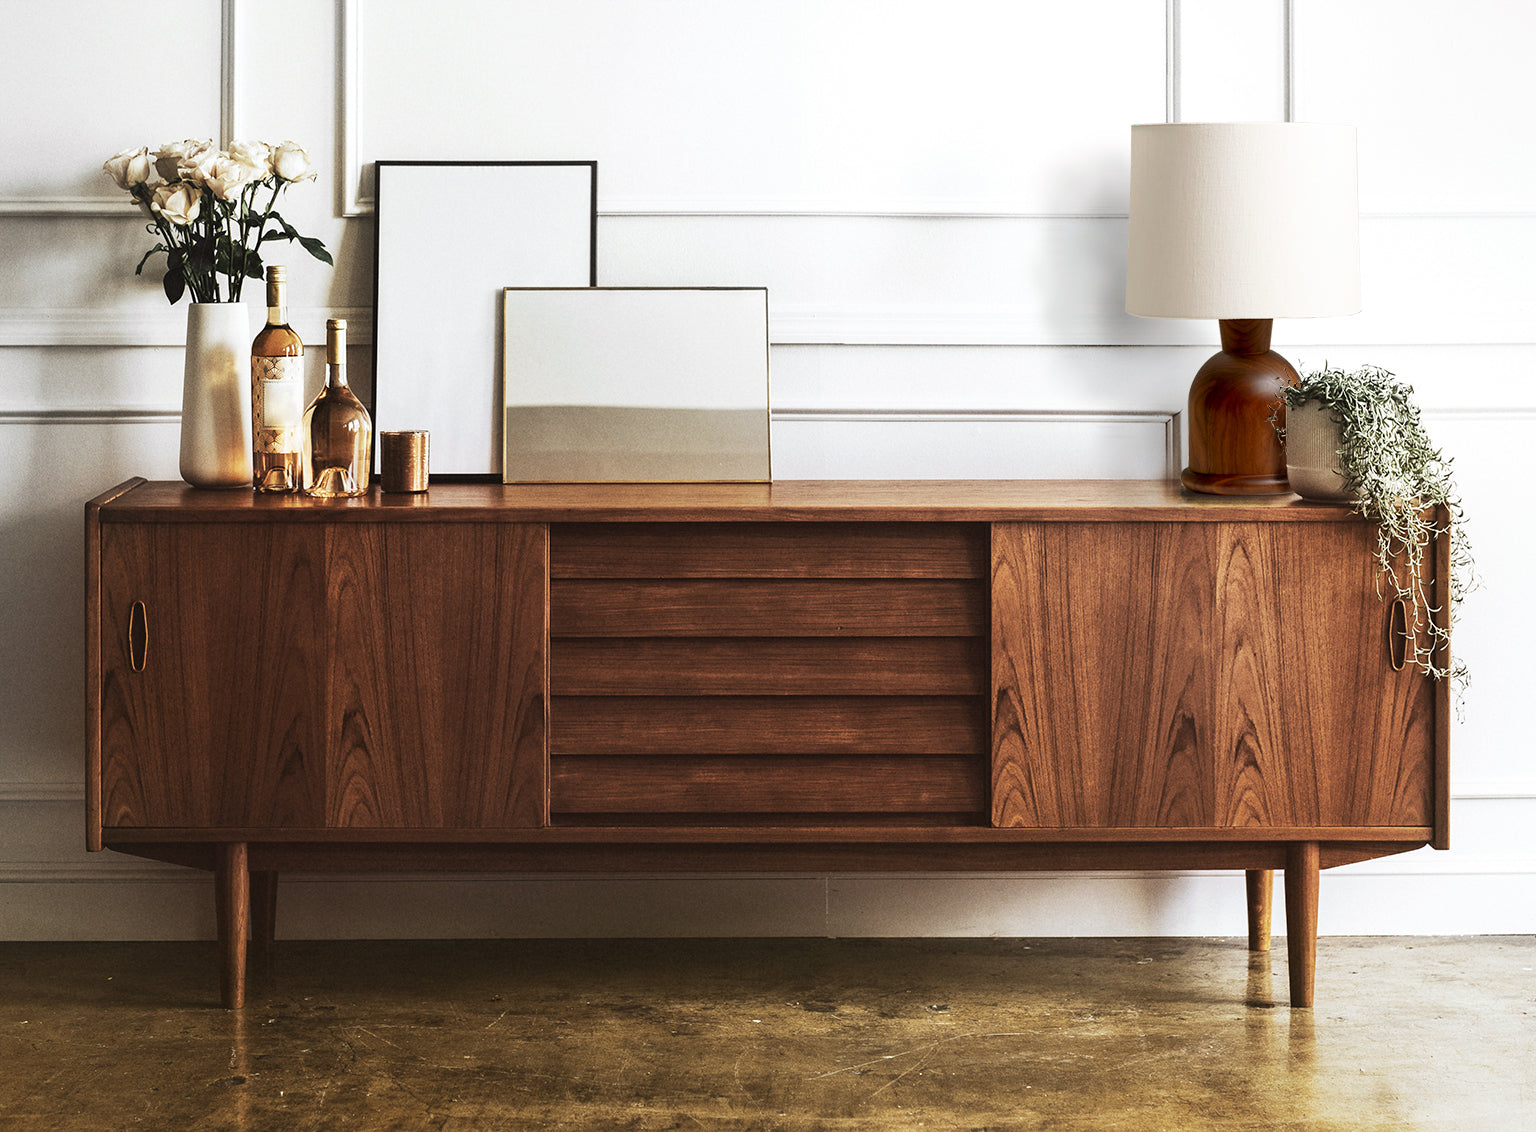 Modern Hardwood Credenza with Beacon Table Lamp by Studio DUNN in Walnut and Cream Linen